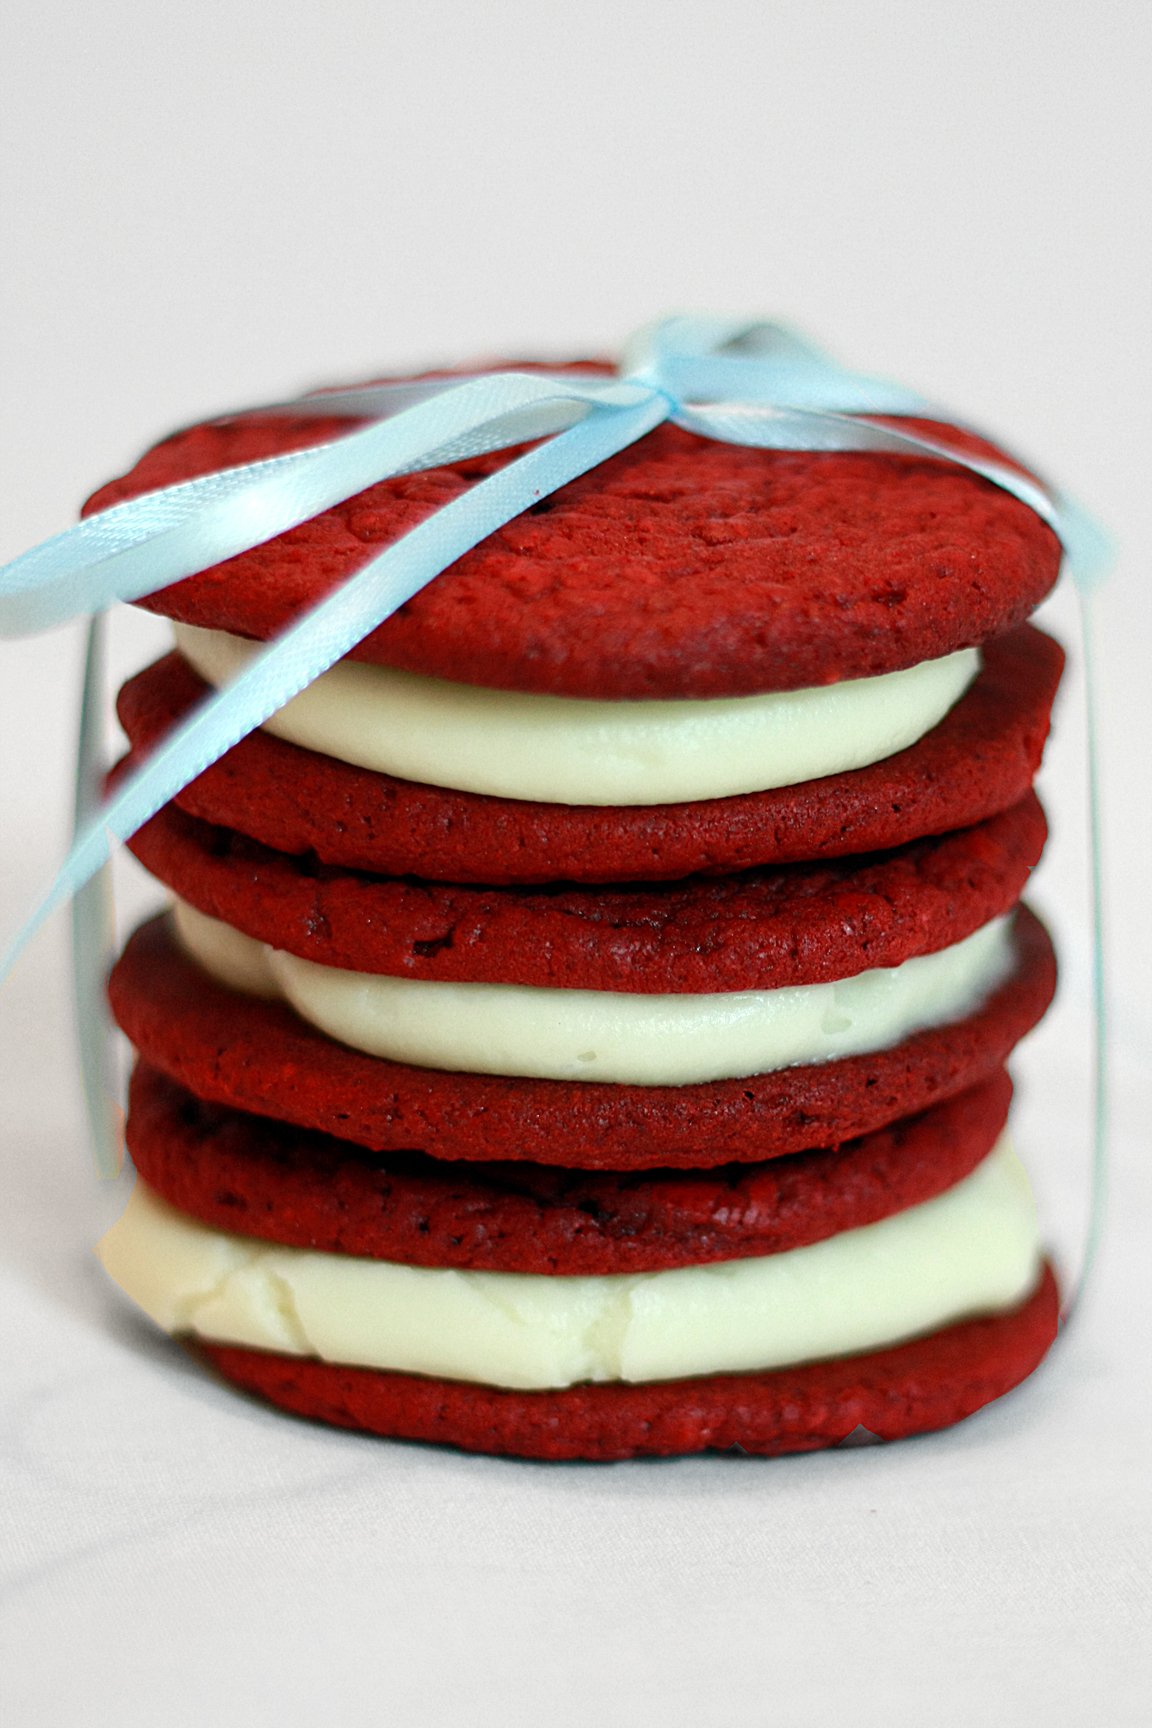 Runs With Spatulas: Want Some Red Velvet Whoopie Pies?